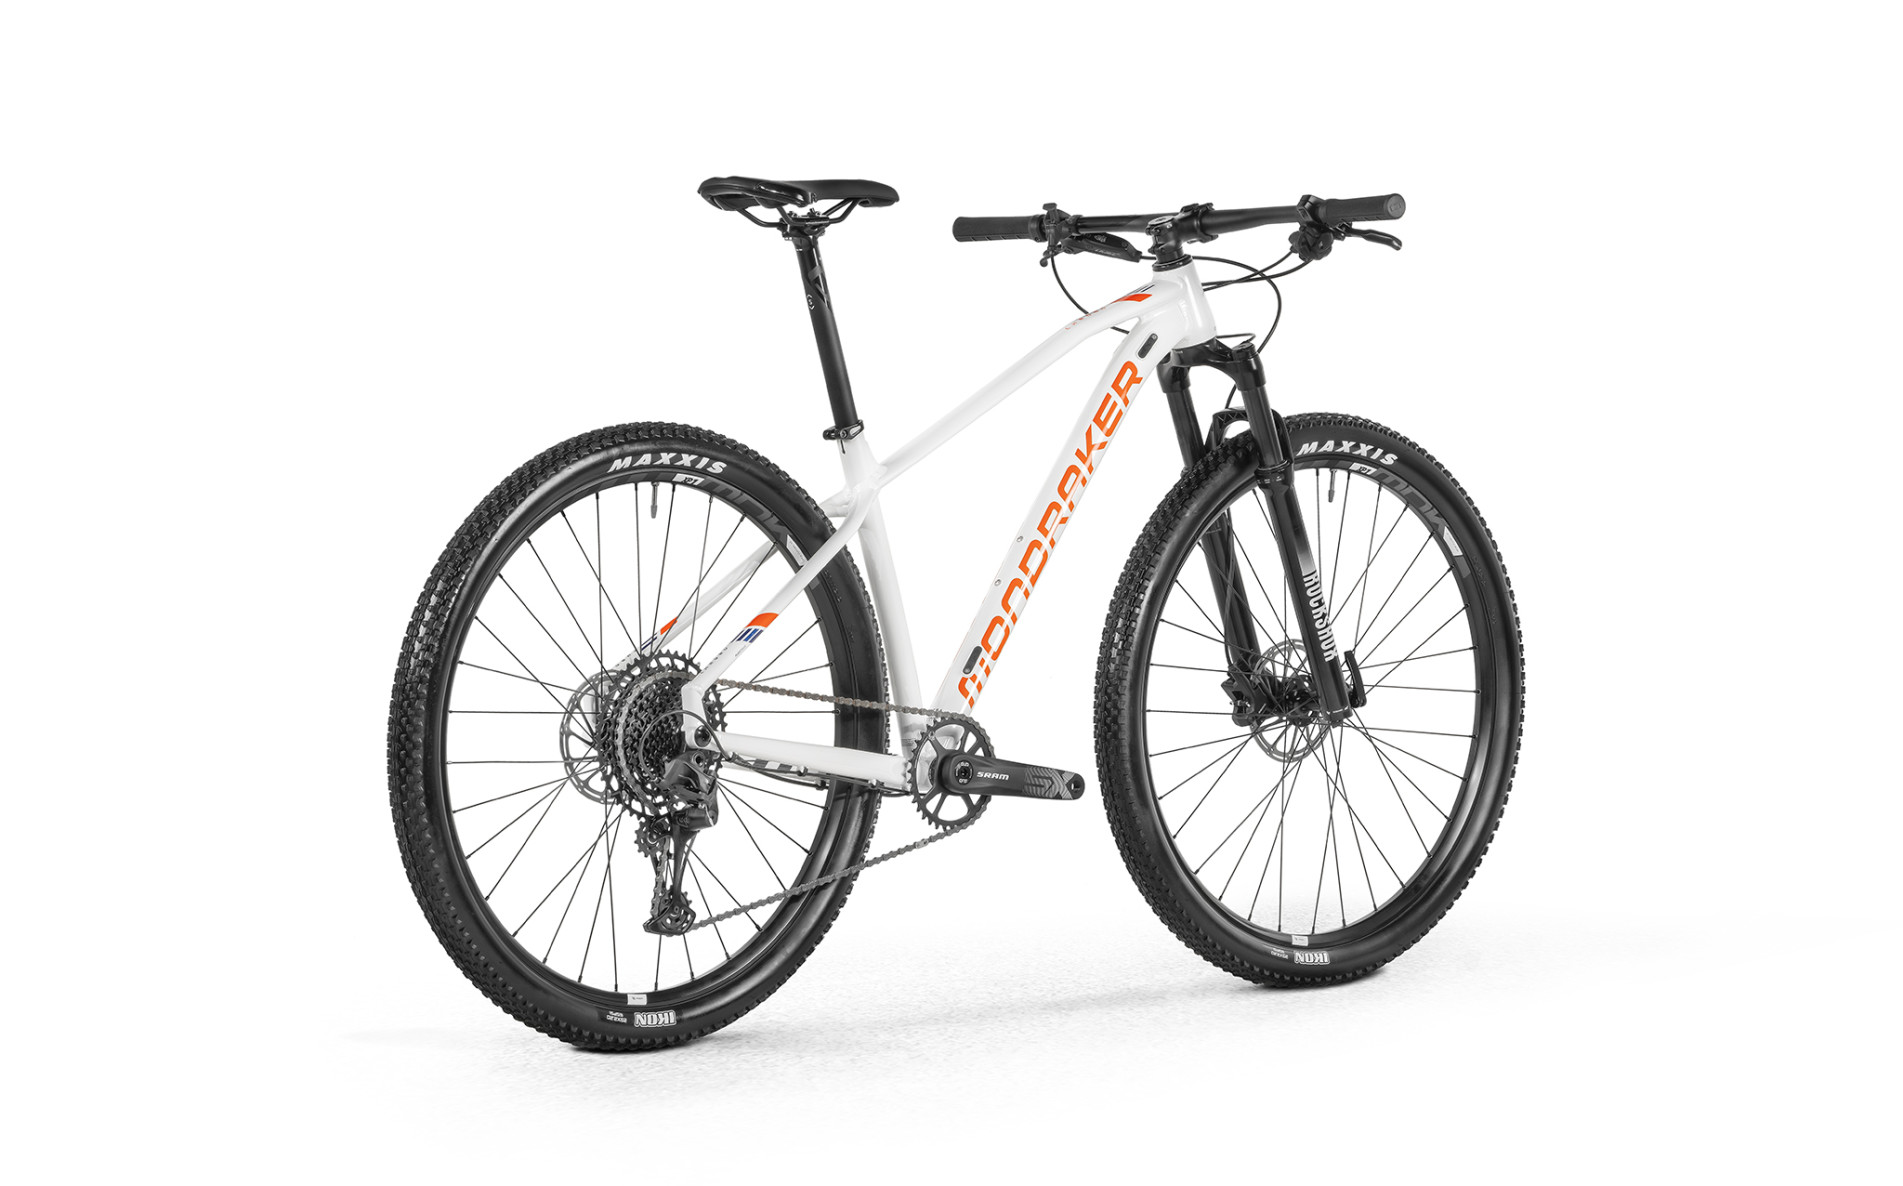 Horské kolo MONDRAKER CHRONO 29, white / orange / blue, 2021